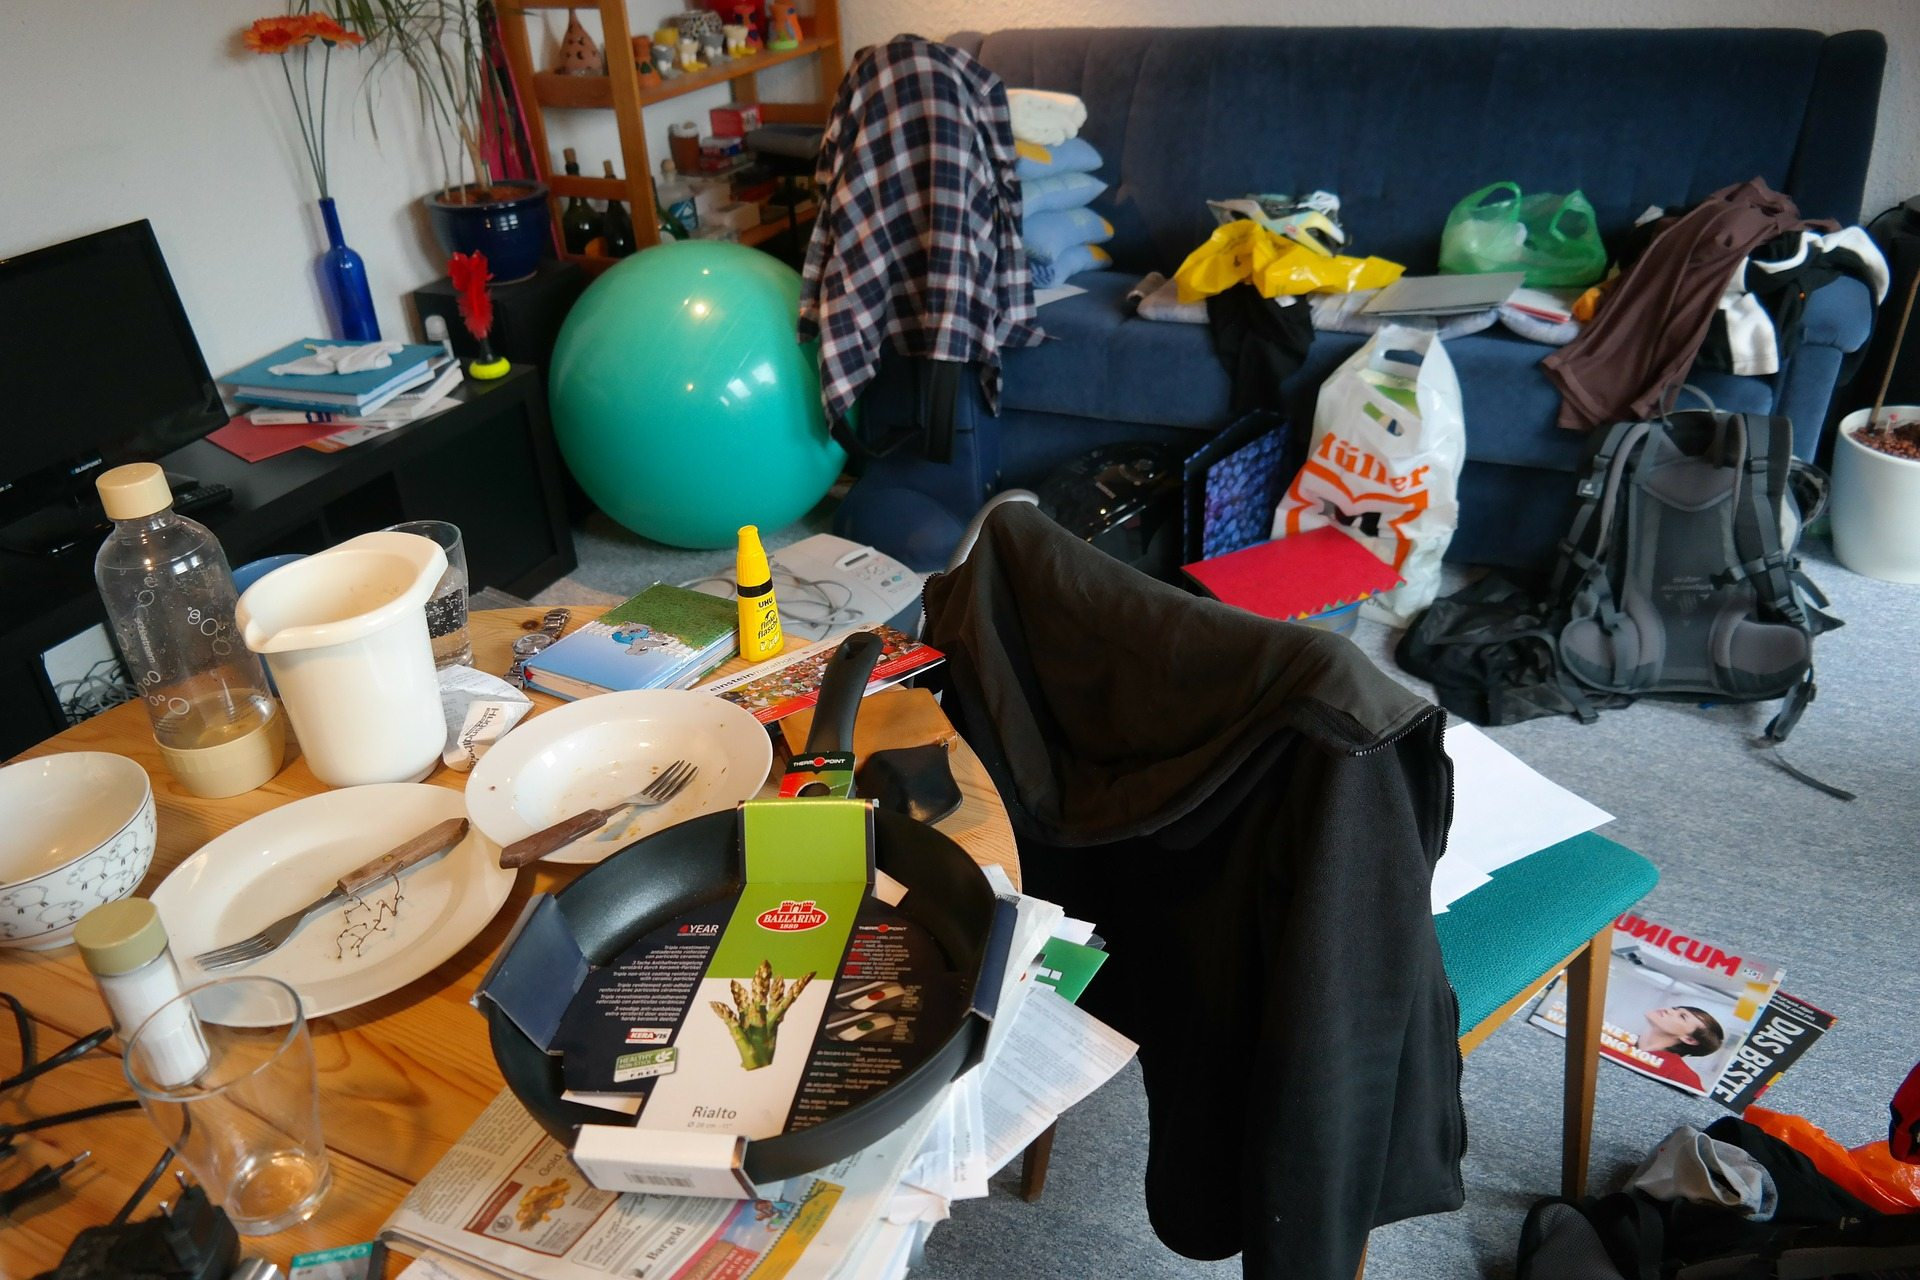 Image: A very messy living area